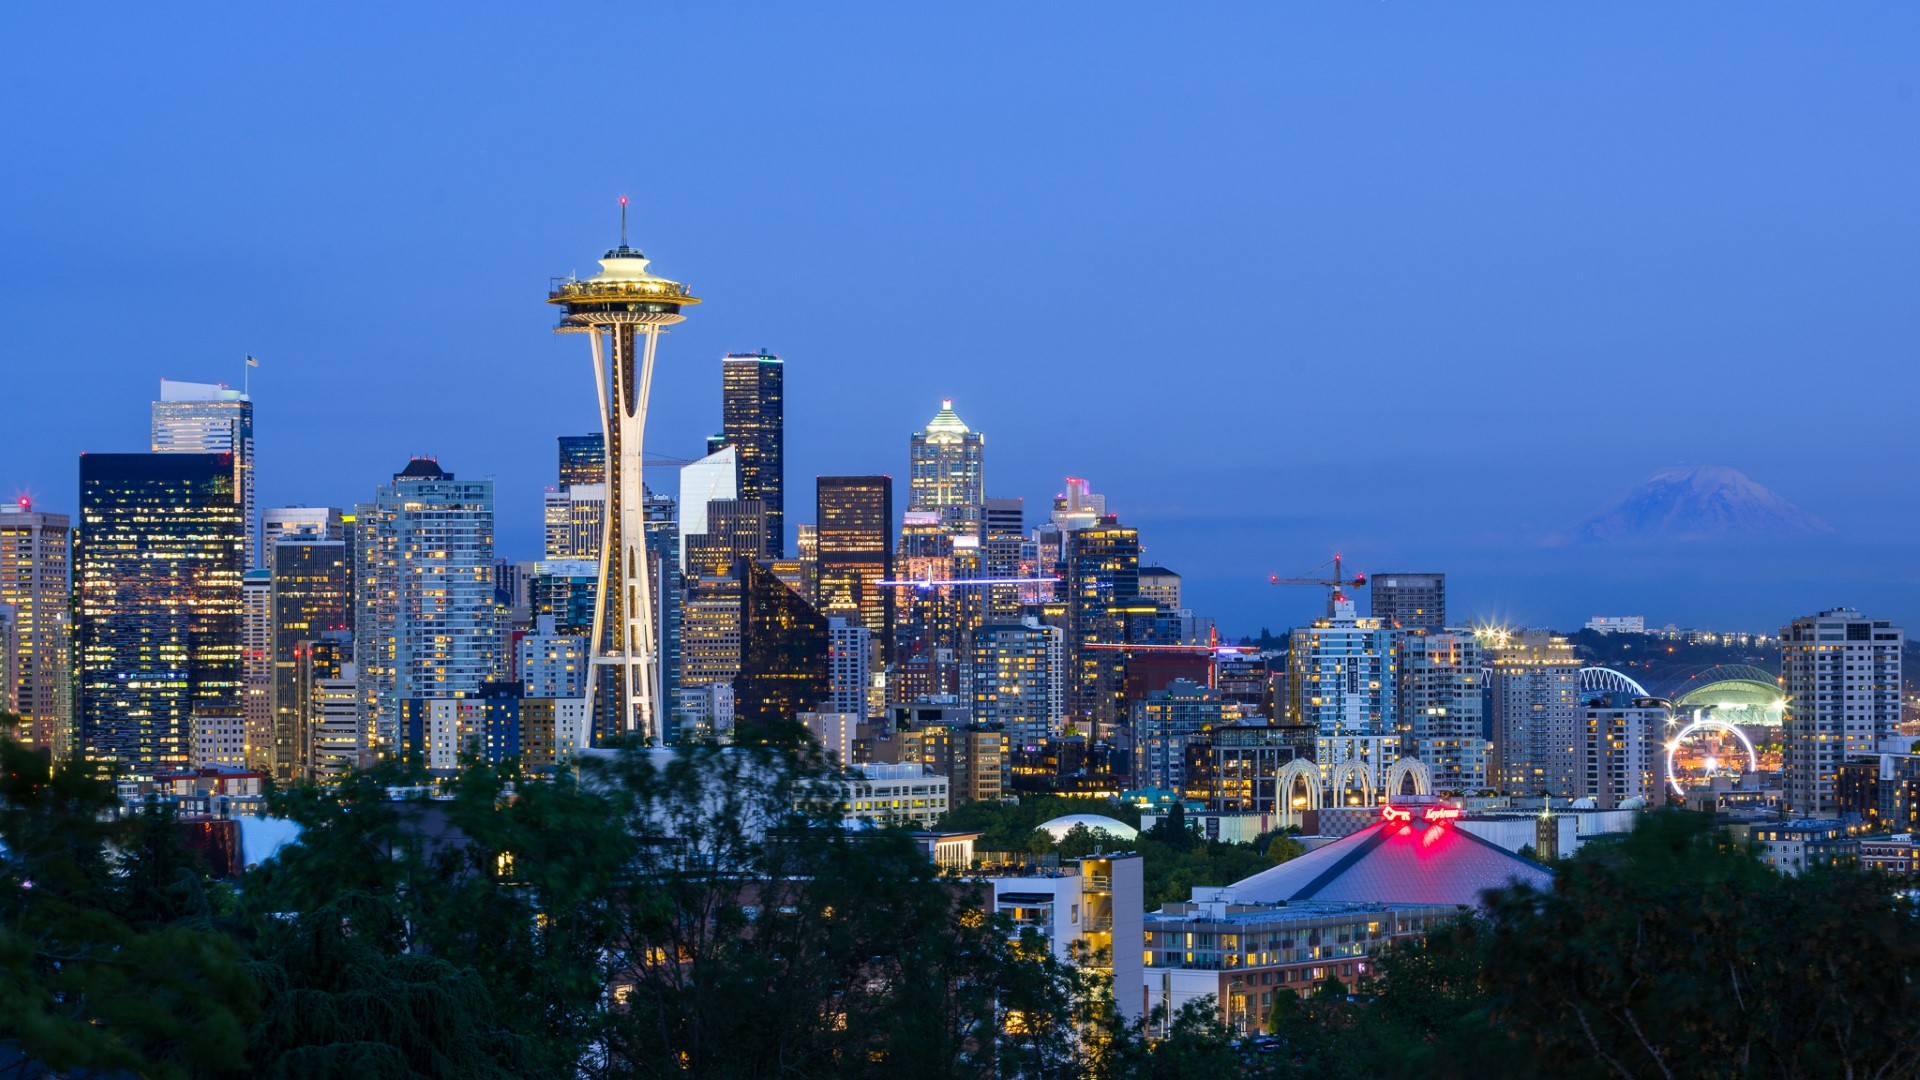 Twilight Photography of Seattle Space Needle